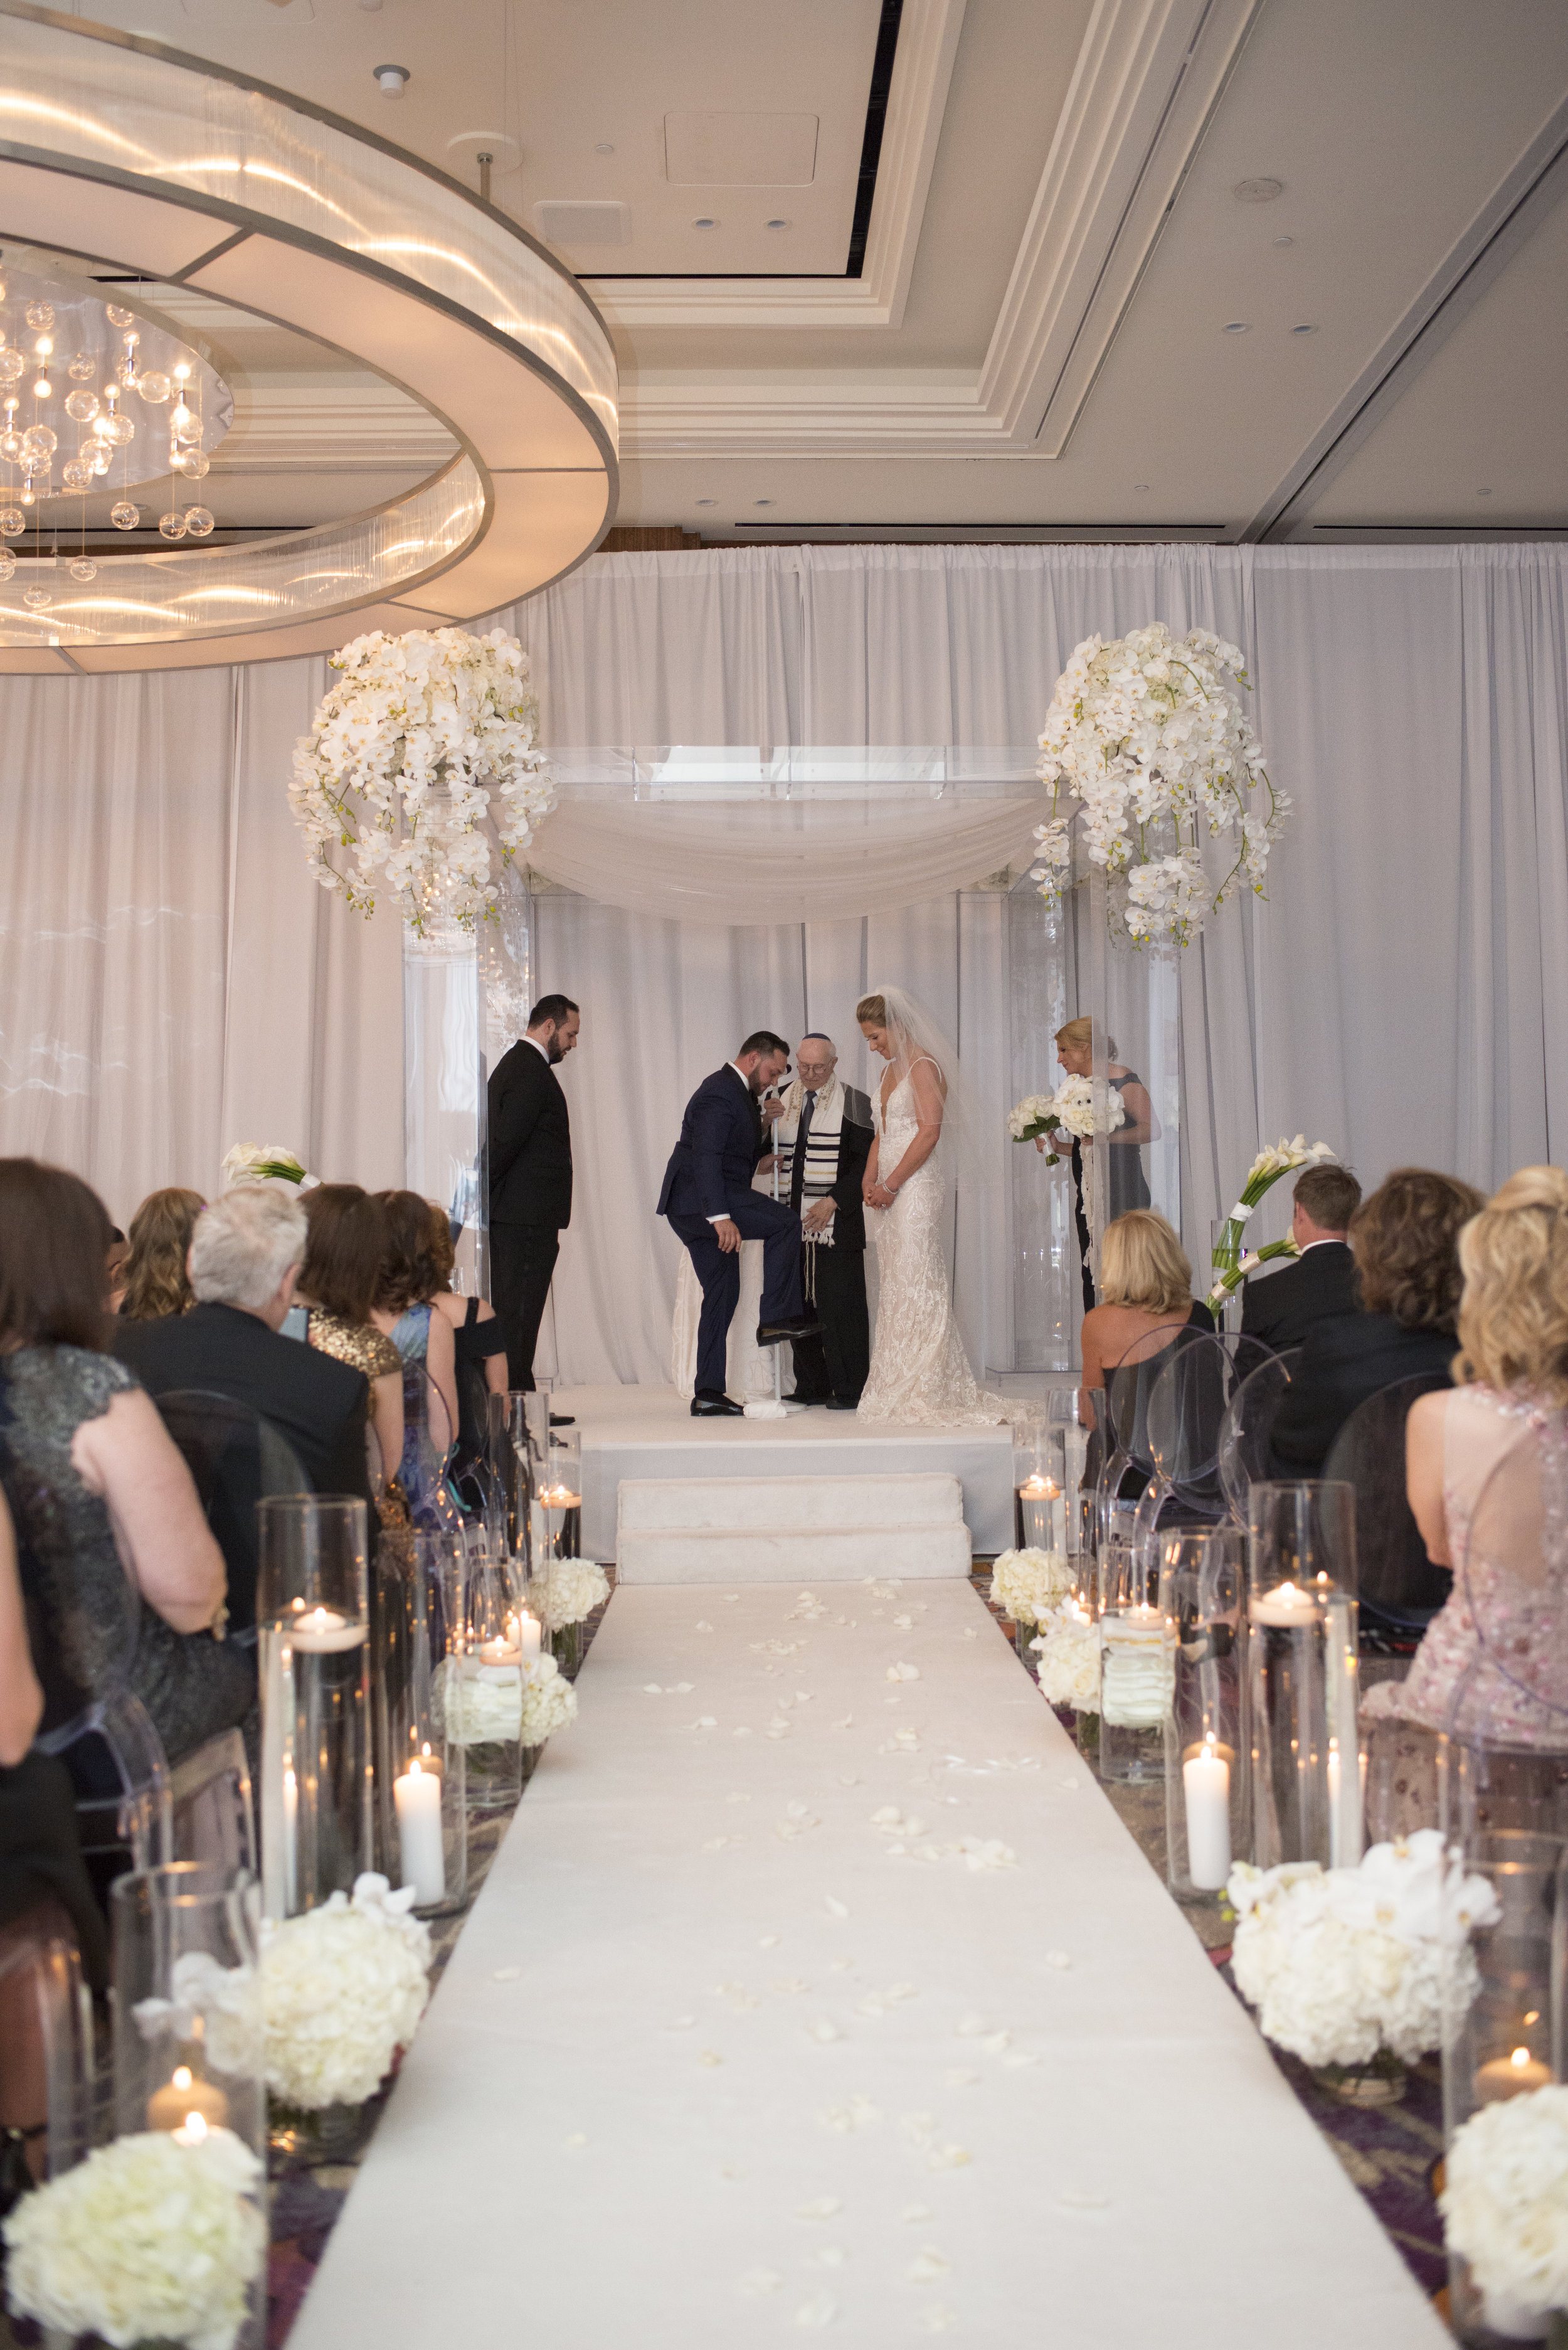 Luxury jewish wedding ceremony at the Mandarin Oriental by Destination Wedding Planner and Event Designer Andrea Eppolito.WEDDING PLANNING & EVENT DESIGN • Andrea Eppolito Events ,PHOTOGRAPHY • AltF Photography ,FLORAL AND DECOR DESIGN & PRODUCTION • Destinations by Design , CATERING • Mandarin Oriental Las Vegas , COCKTAILS •  The Grand Bevy , WEDDING GOWN •  Galia Lahav ,SHOES •  Jimmy Choo